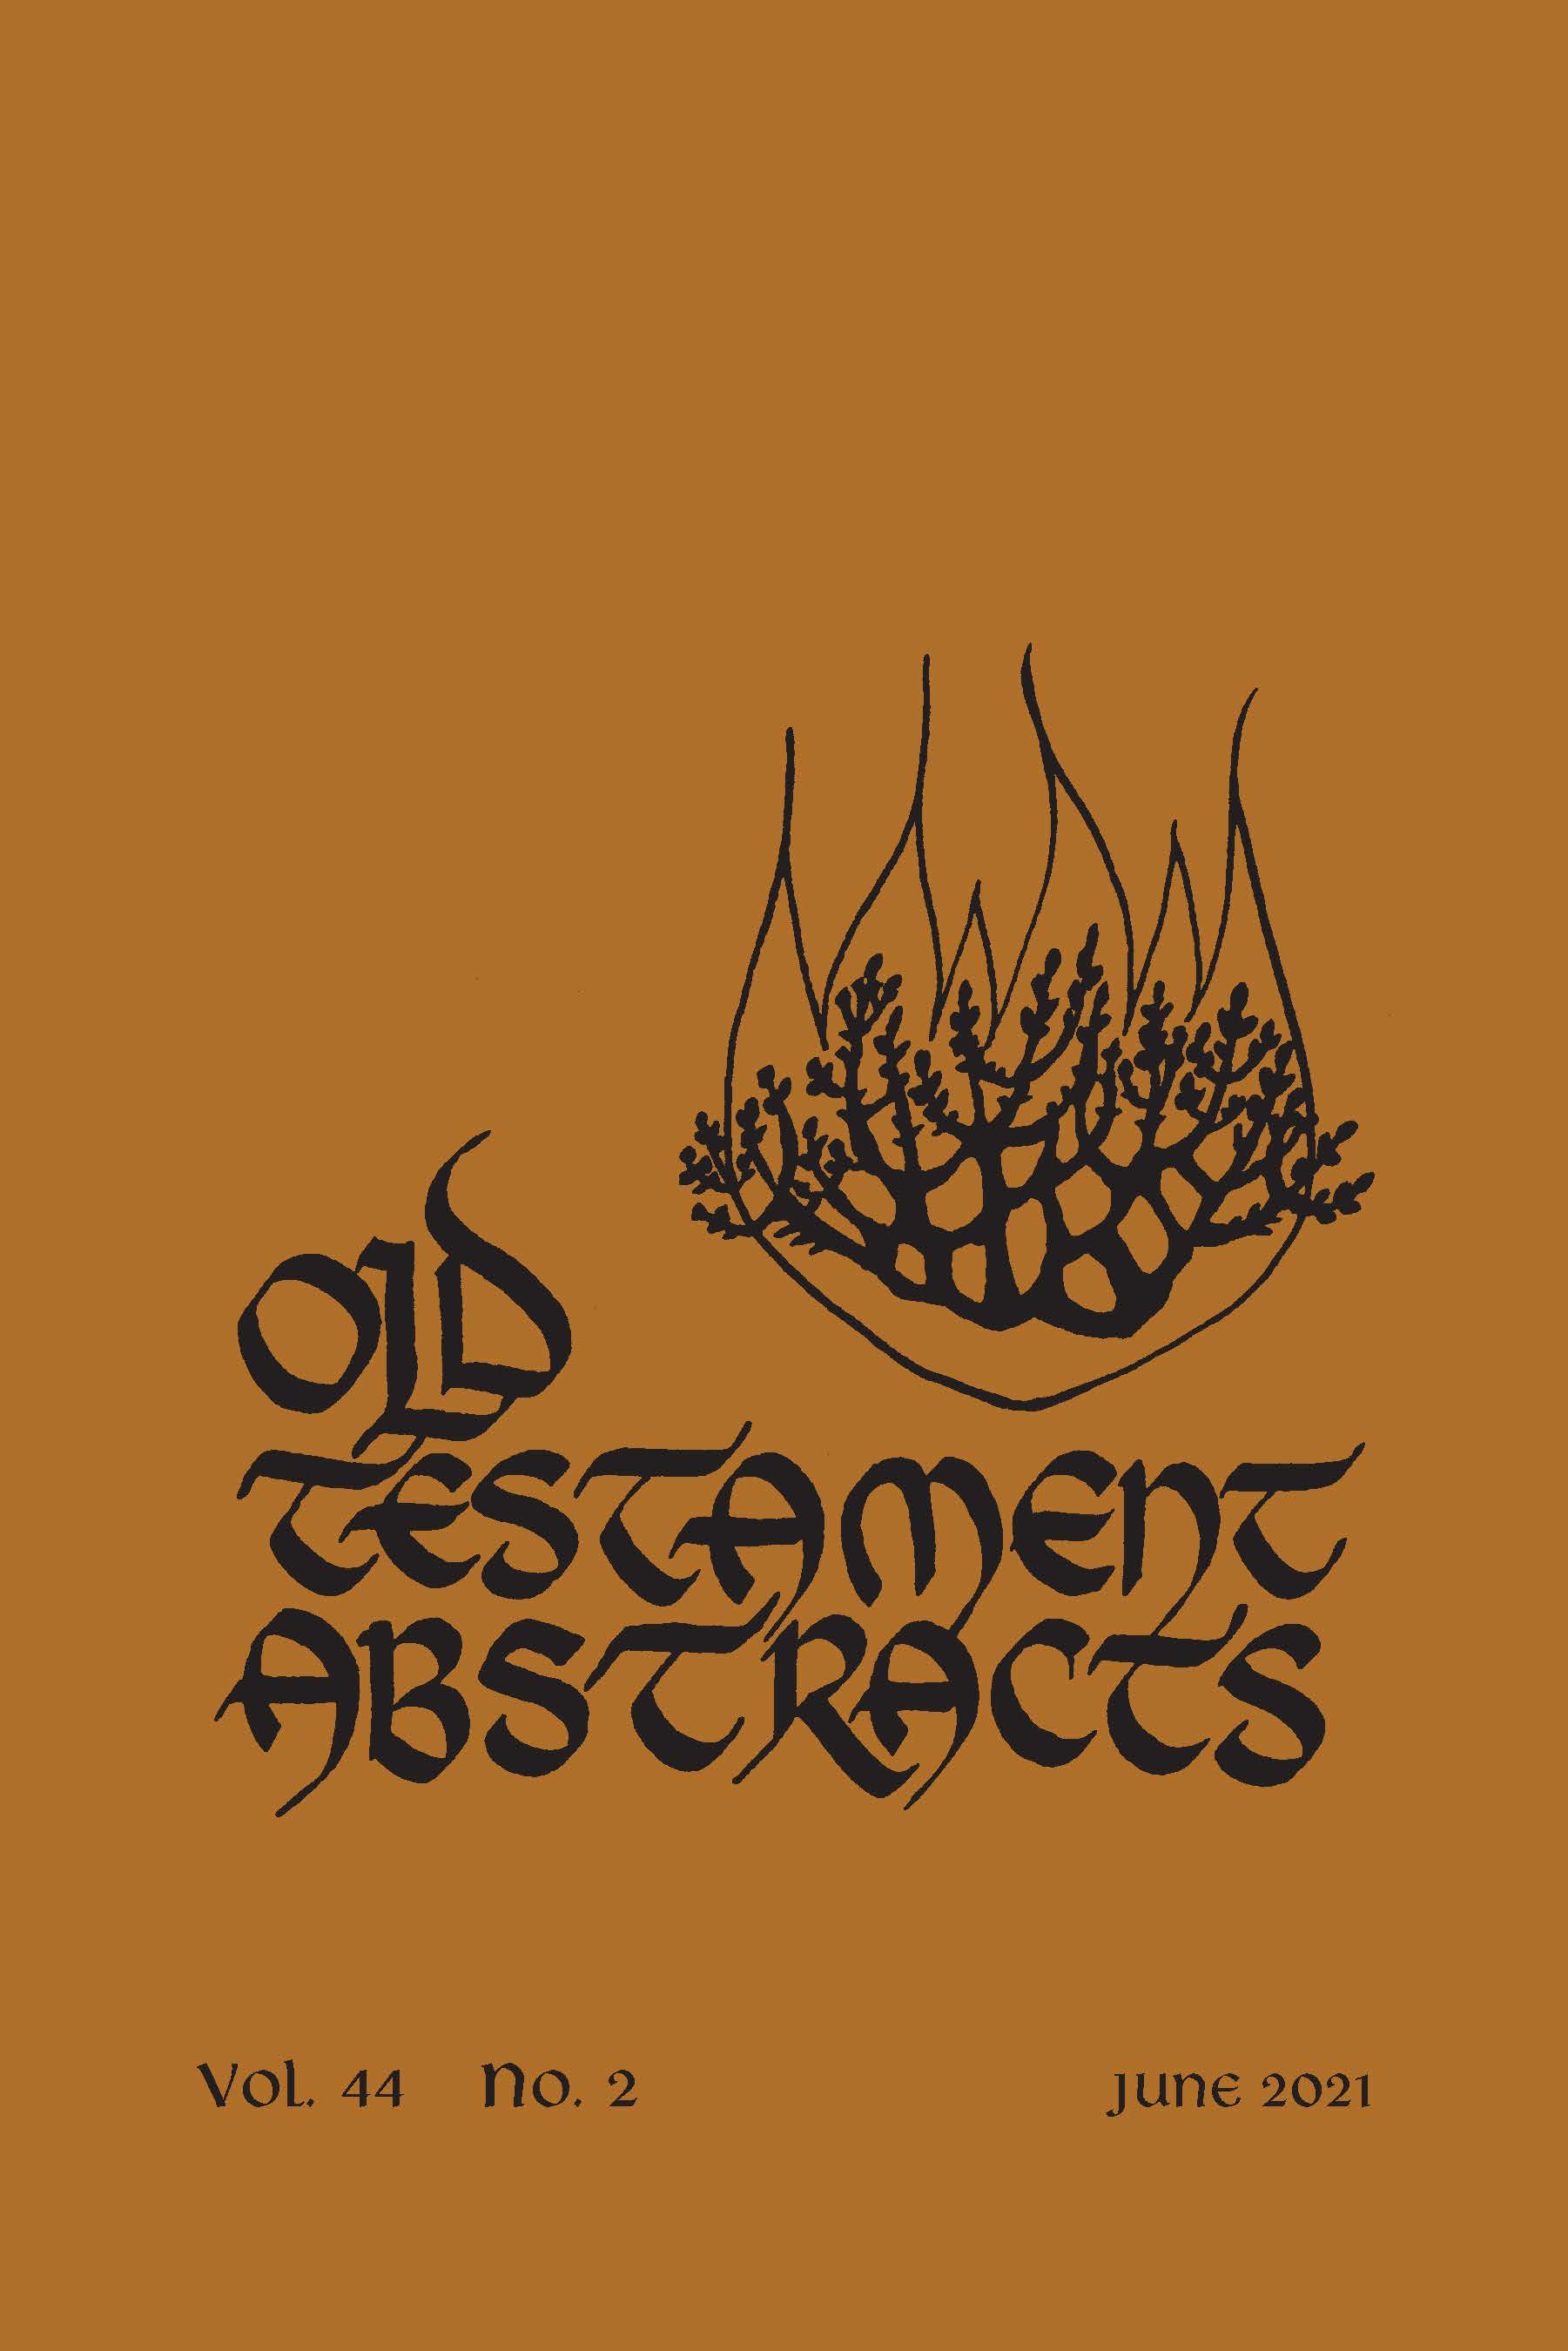 Old Testament Abstracts: Volume 44, Number 2, June 2021